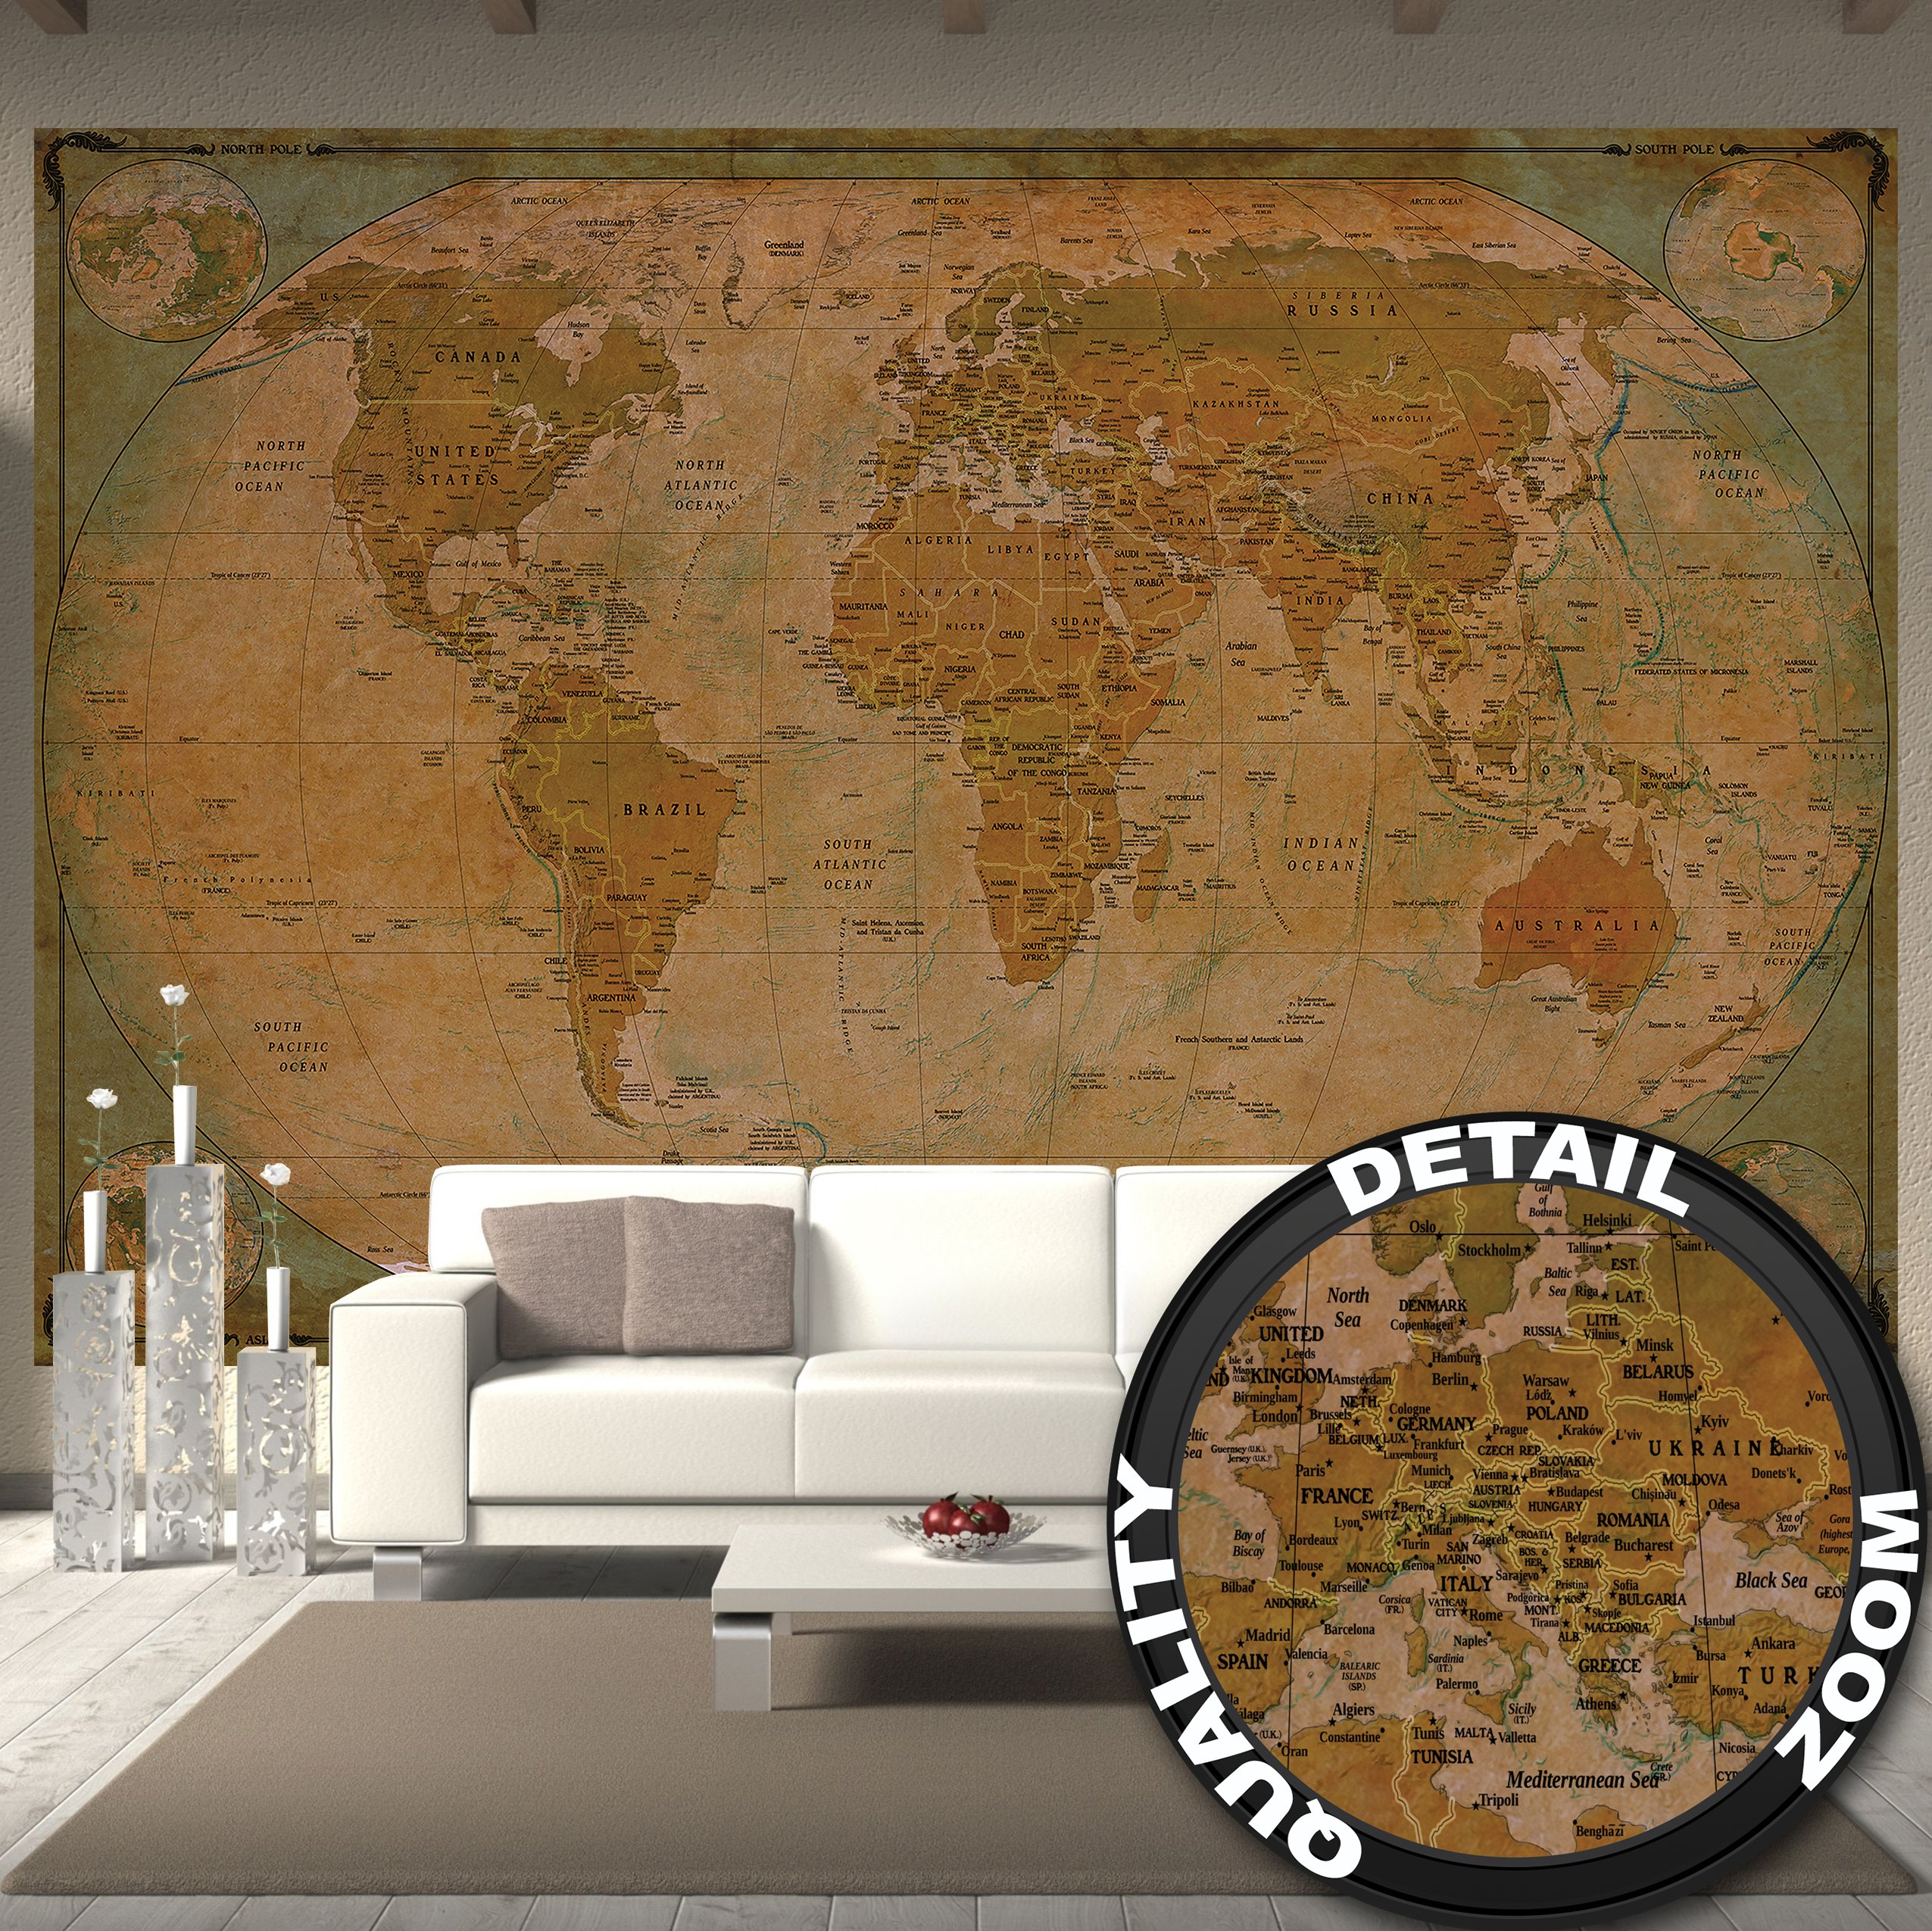 Wallpaper map of the world – wall picture decoration Historical World Map Terrestrial Globe Old School Antique Old Map Used Look Retro Vintage I Wallpaper poster wall decor by GREAT ART 132.3 x 93.7